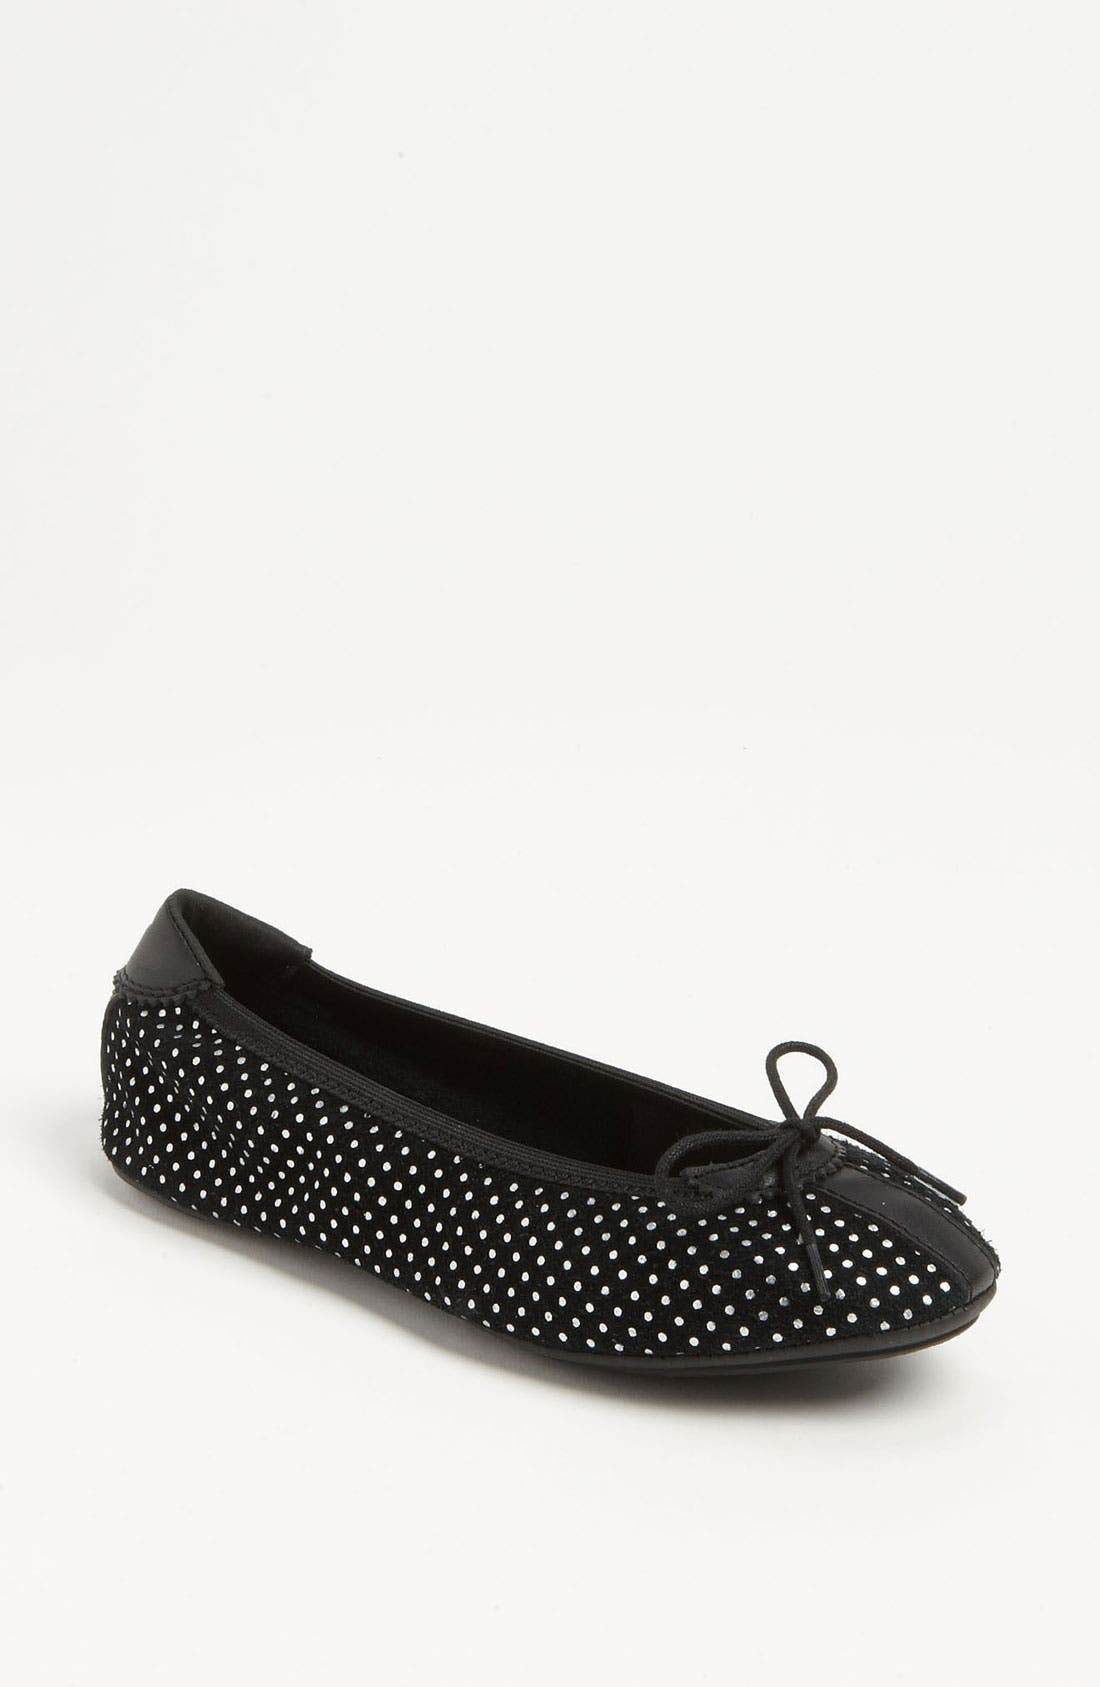 Alternate Image 1 Selected - PUMA 'Kitata' Polka Dot Slip-On